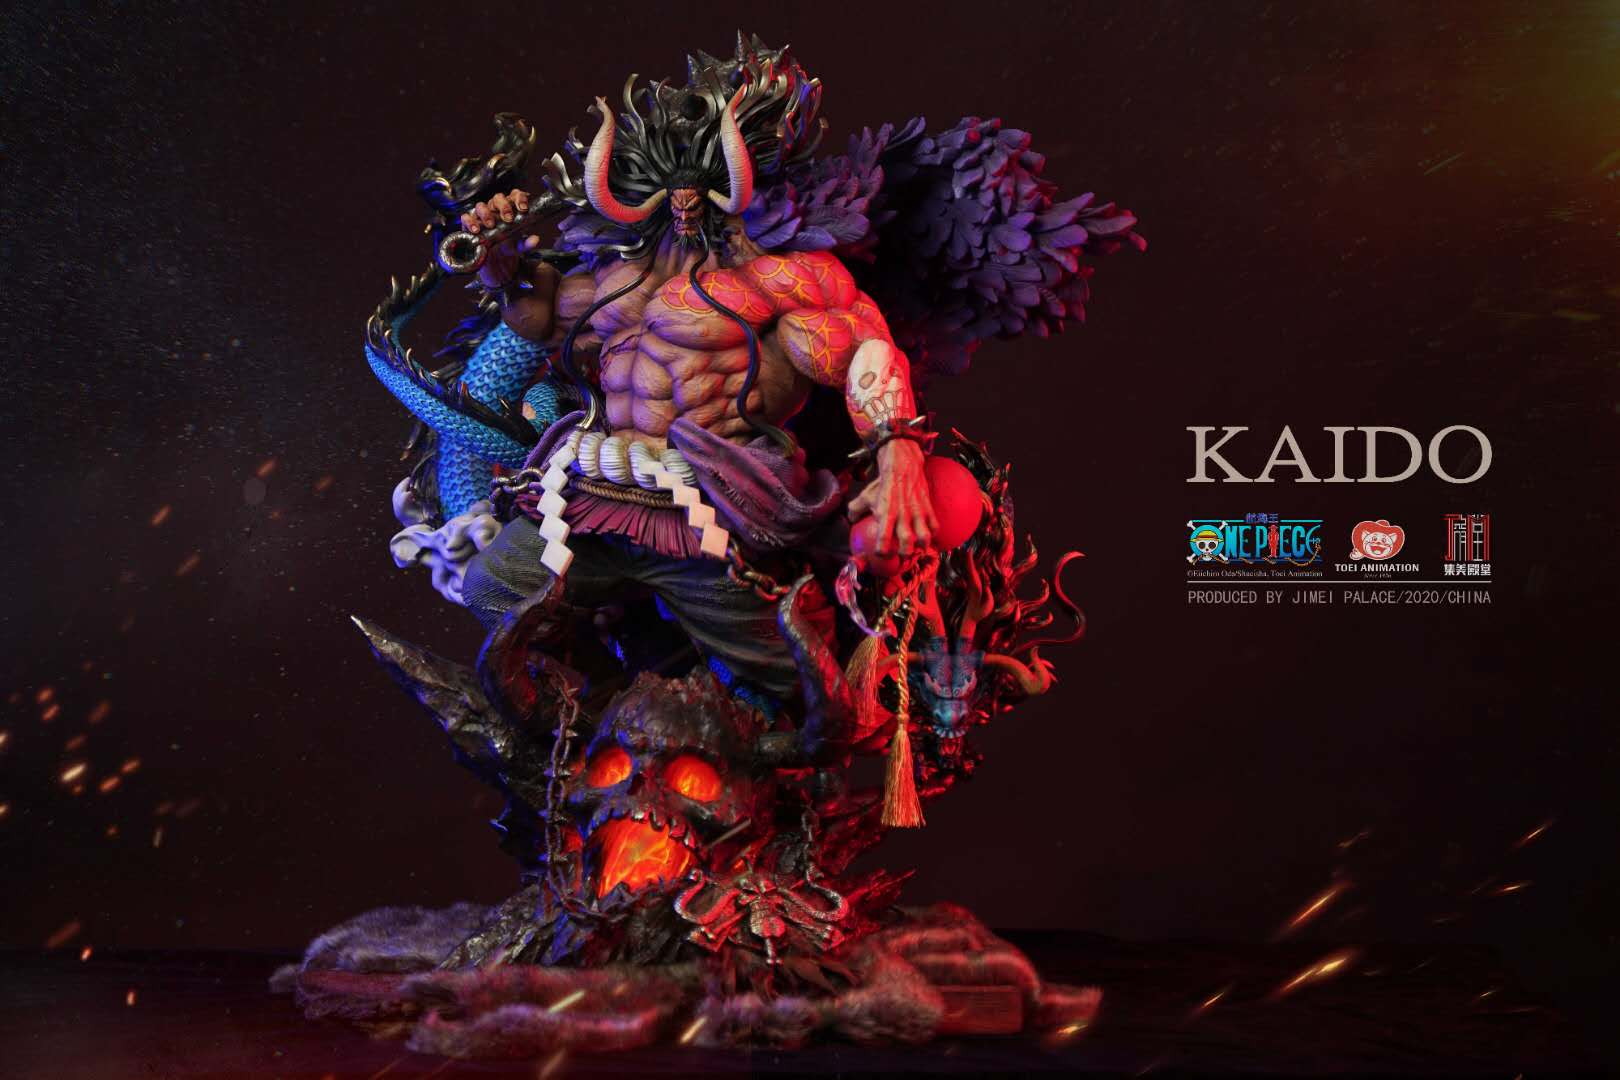 (Scheduled) set of the United States Hall of Fame  King of navigation genuine authorization of the four emperors resonant Kaido limited statue